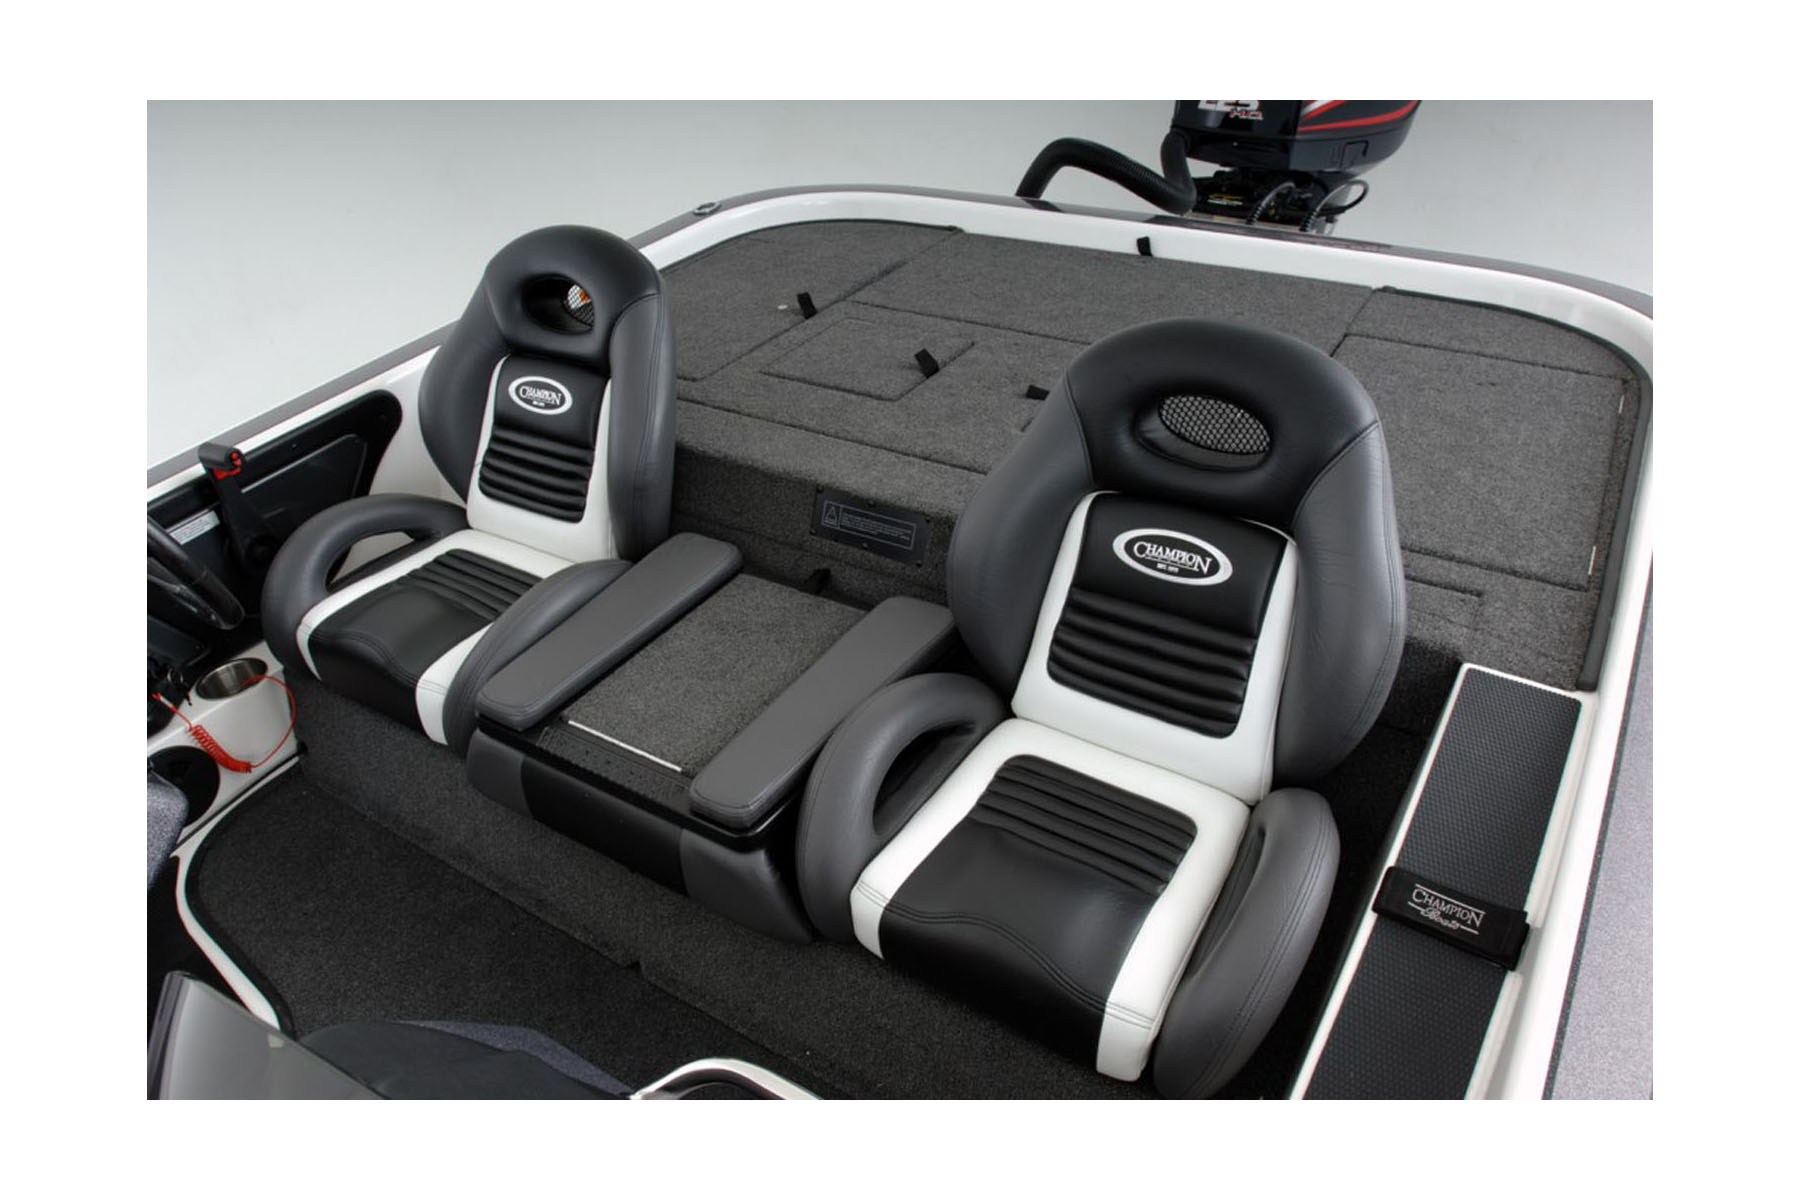 Gt2 Bass Boat Seats With Center Console Storage Box